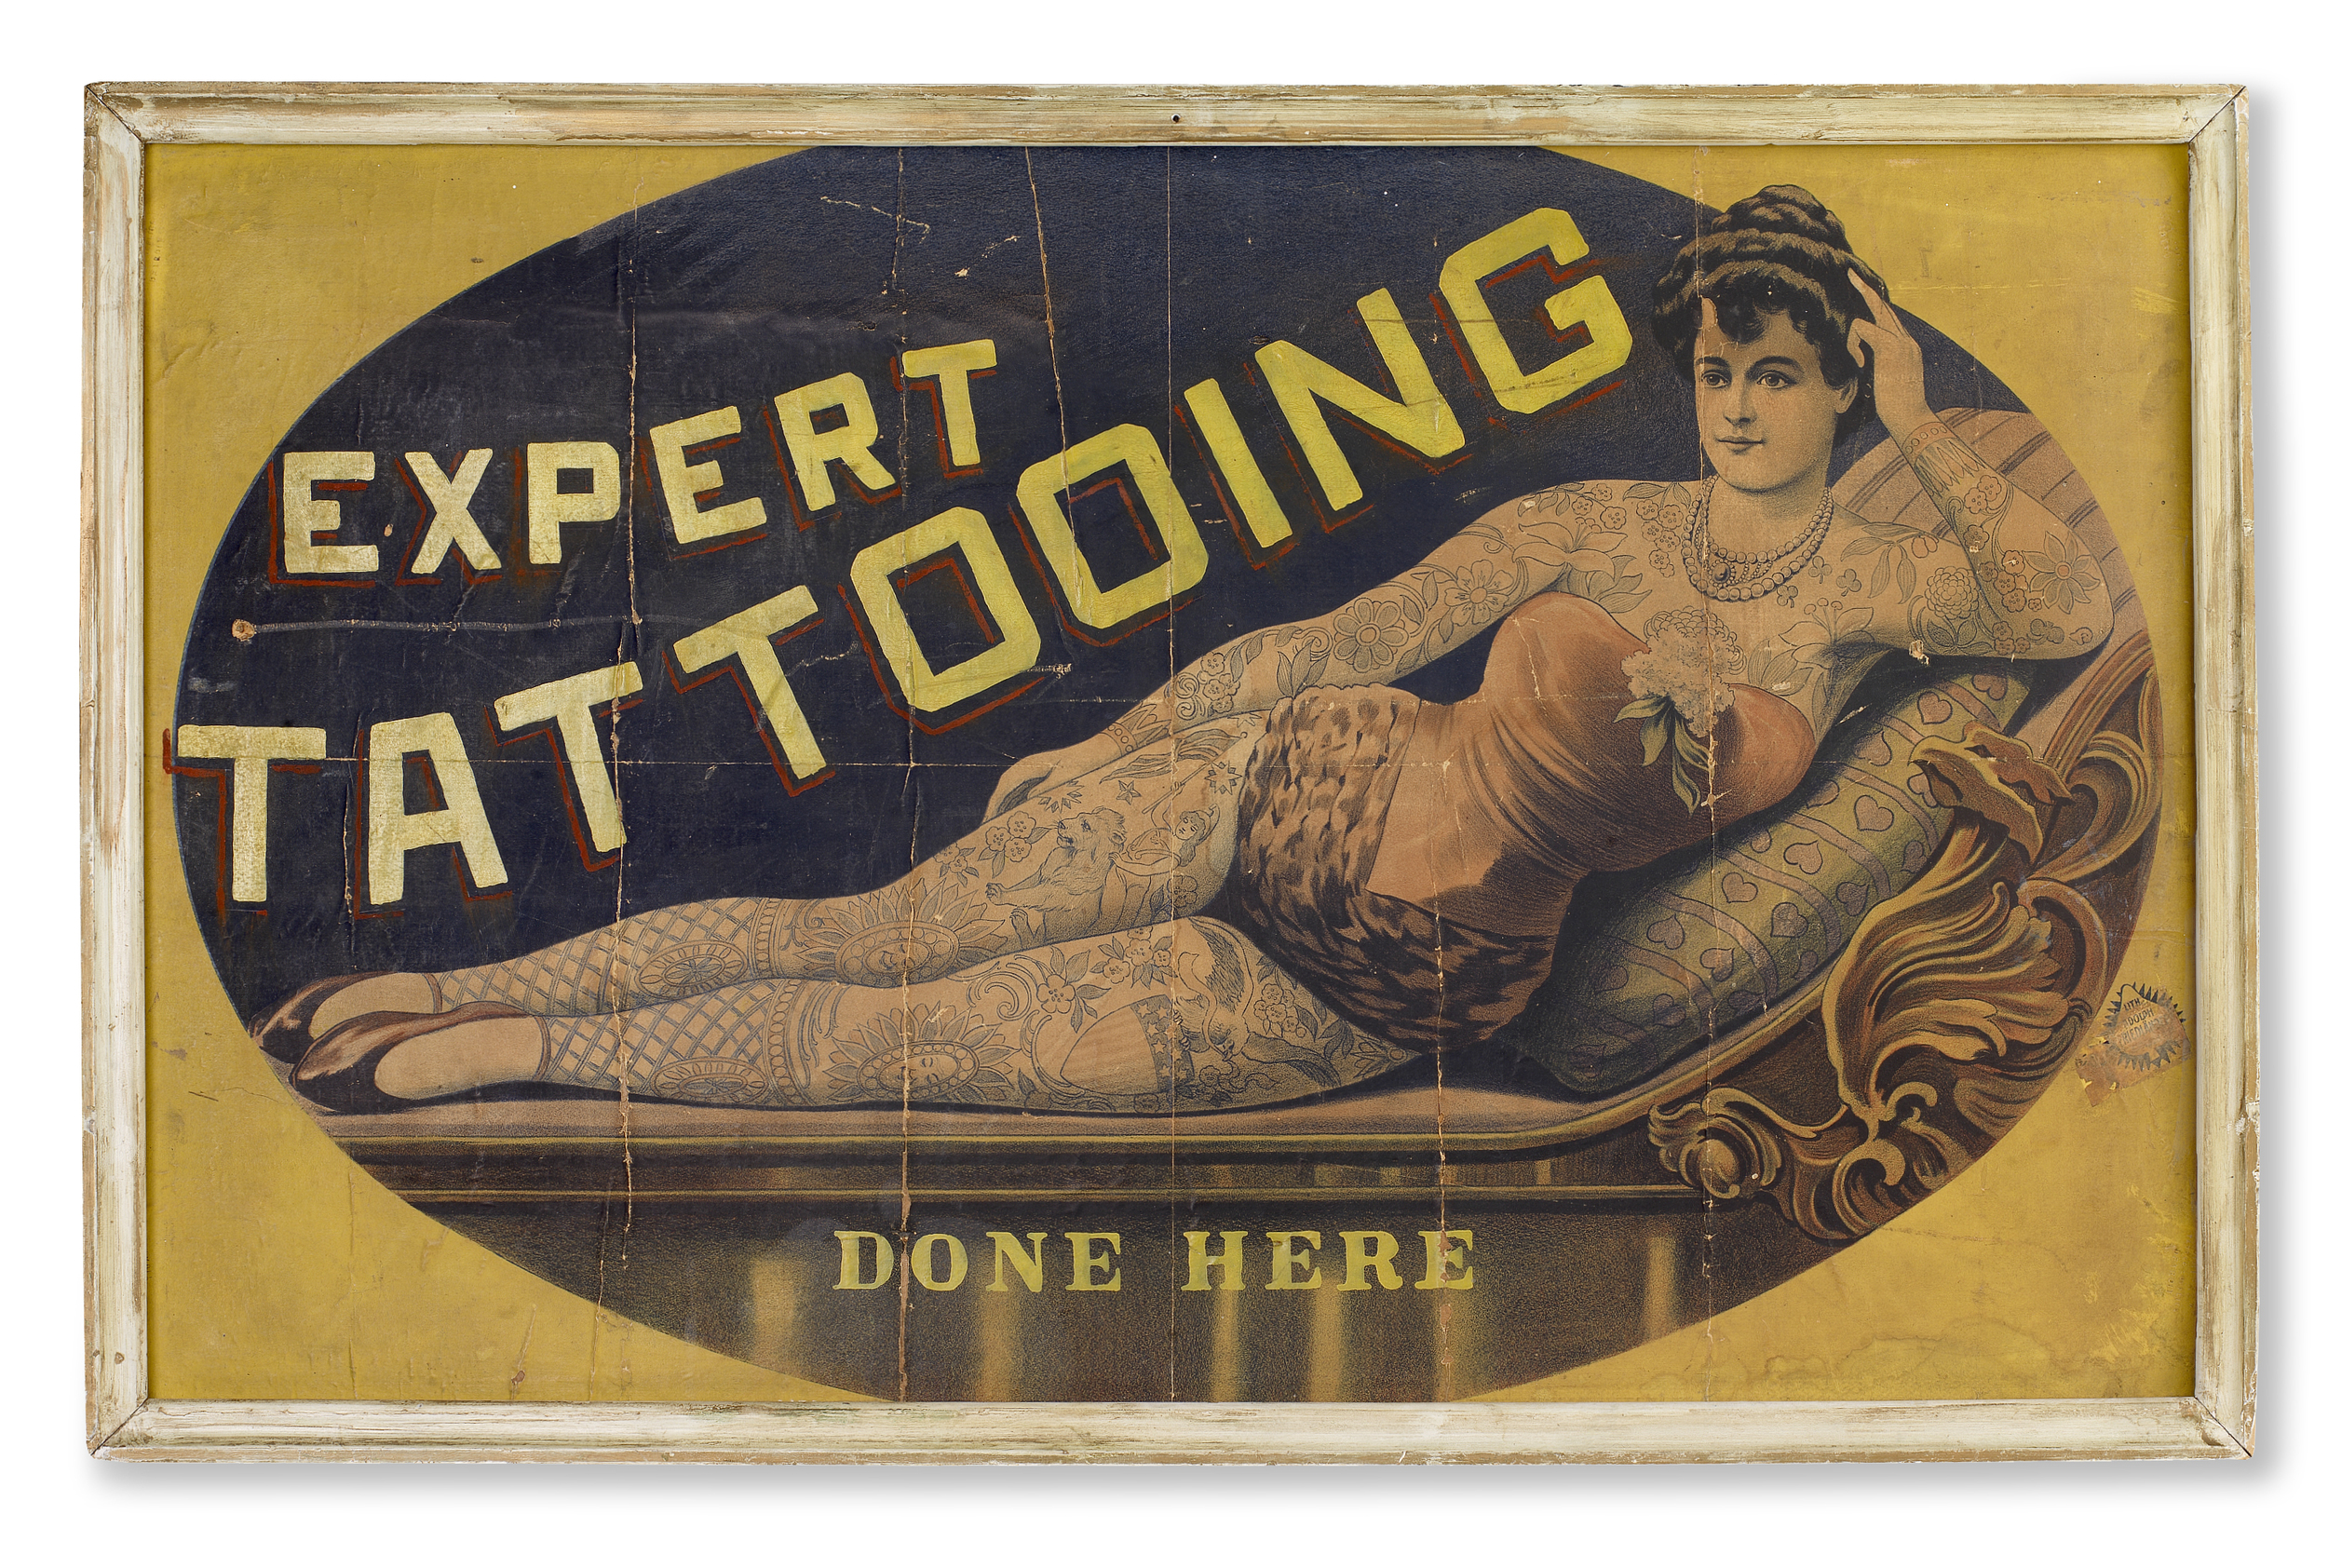 American turn of the Century tattoo parlour poster of a classically posed reclining painted lady. Pop artists such as Peter Blake and Larry Rivers referenced this kind of authentic Americana. In as-found condition, measuring 96cm x 60cm.